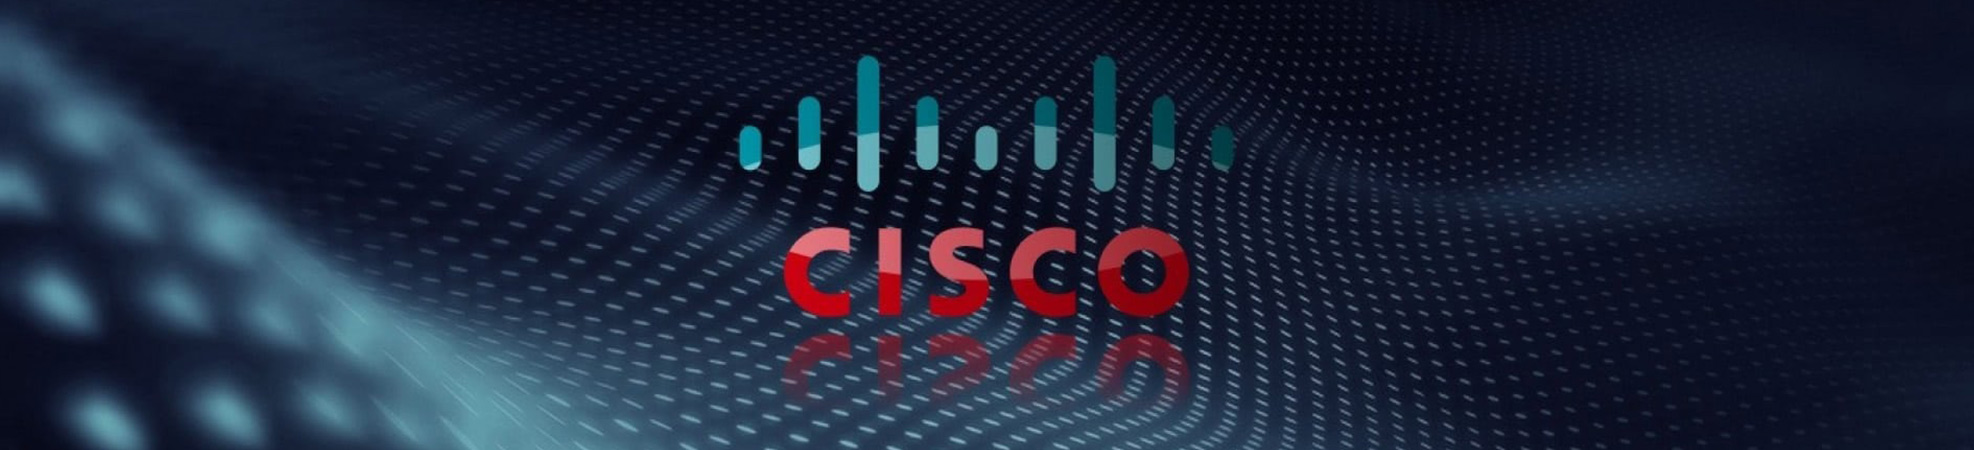 Cisco-firewall